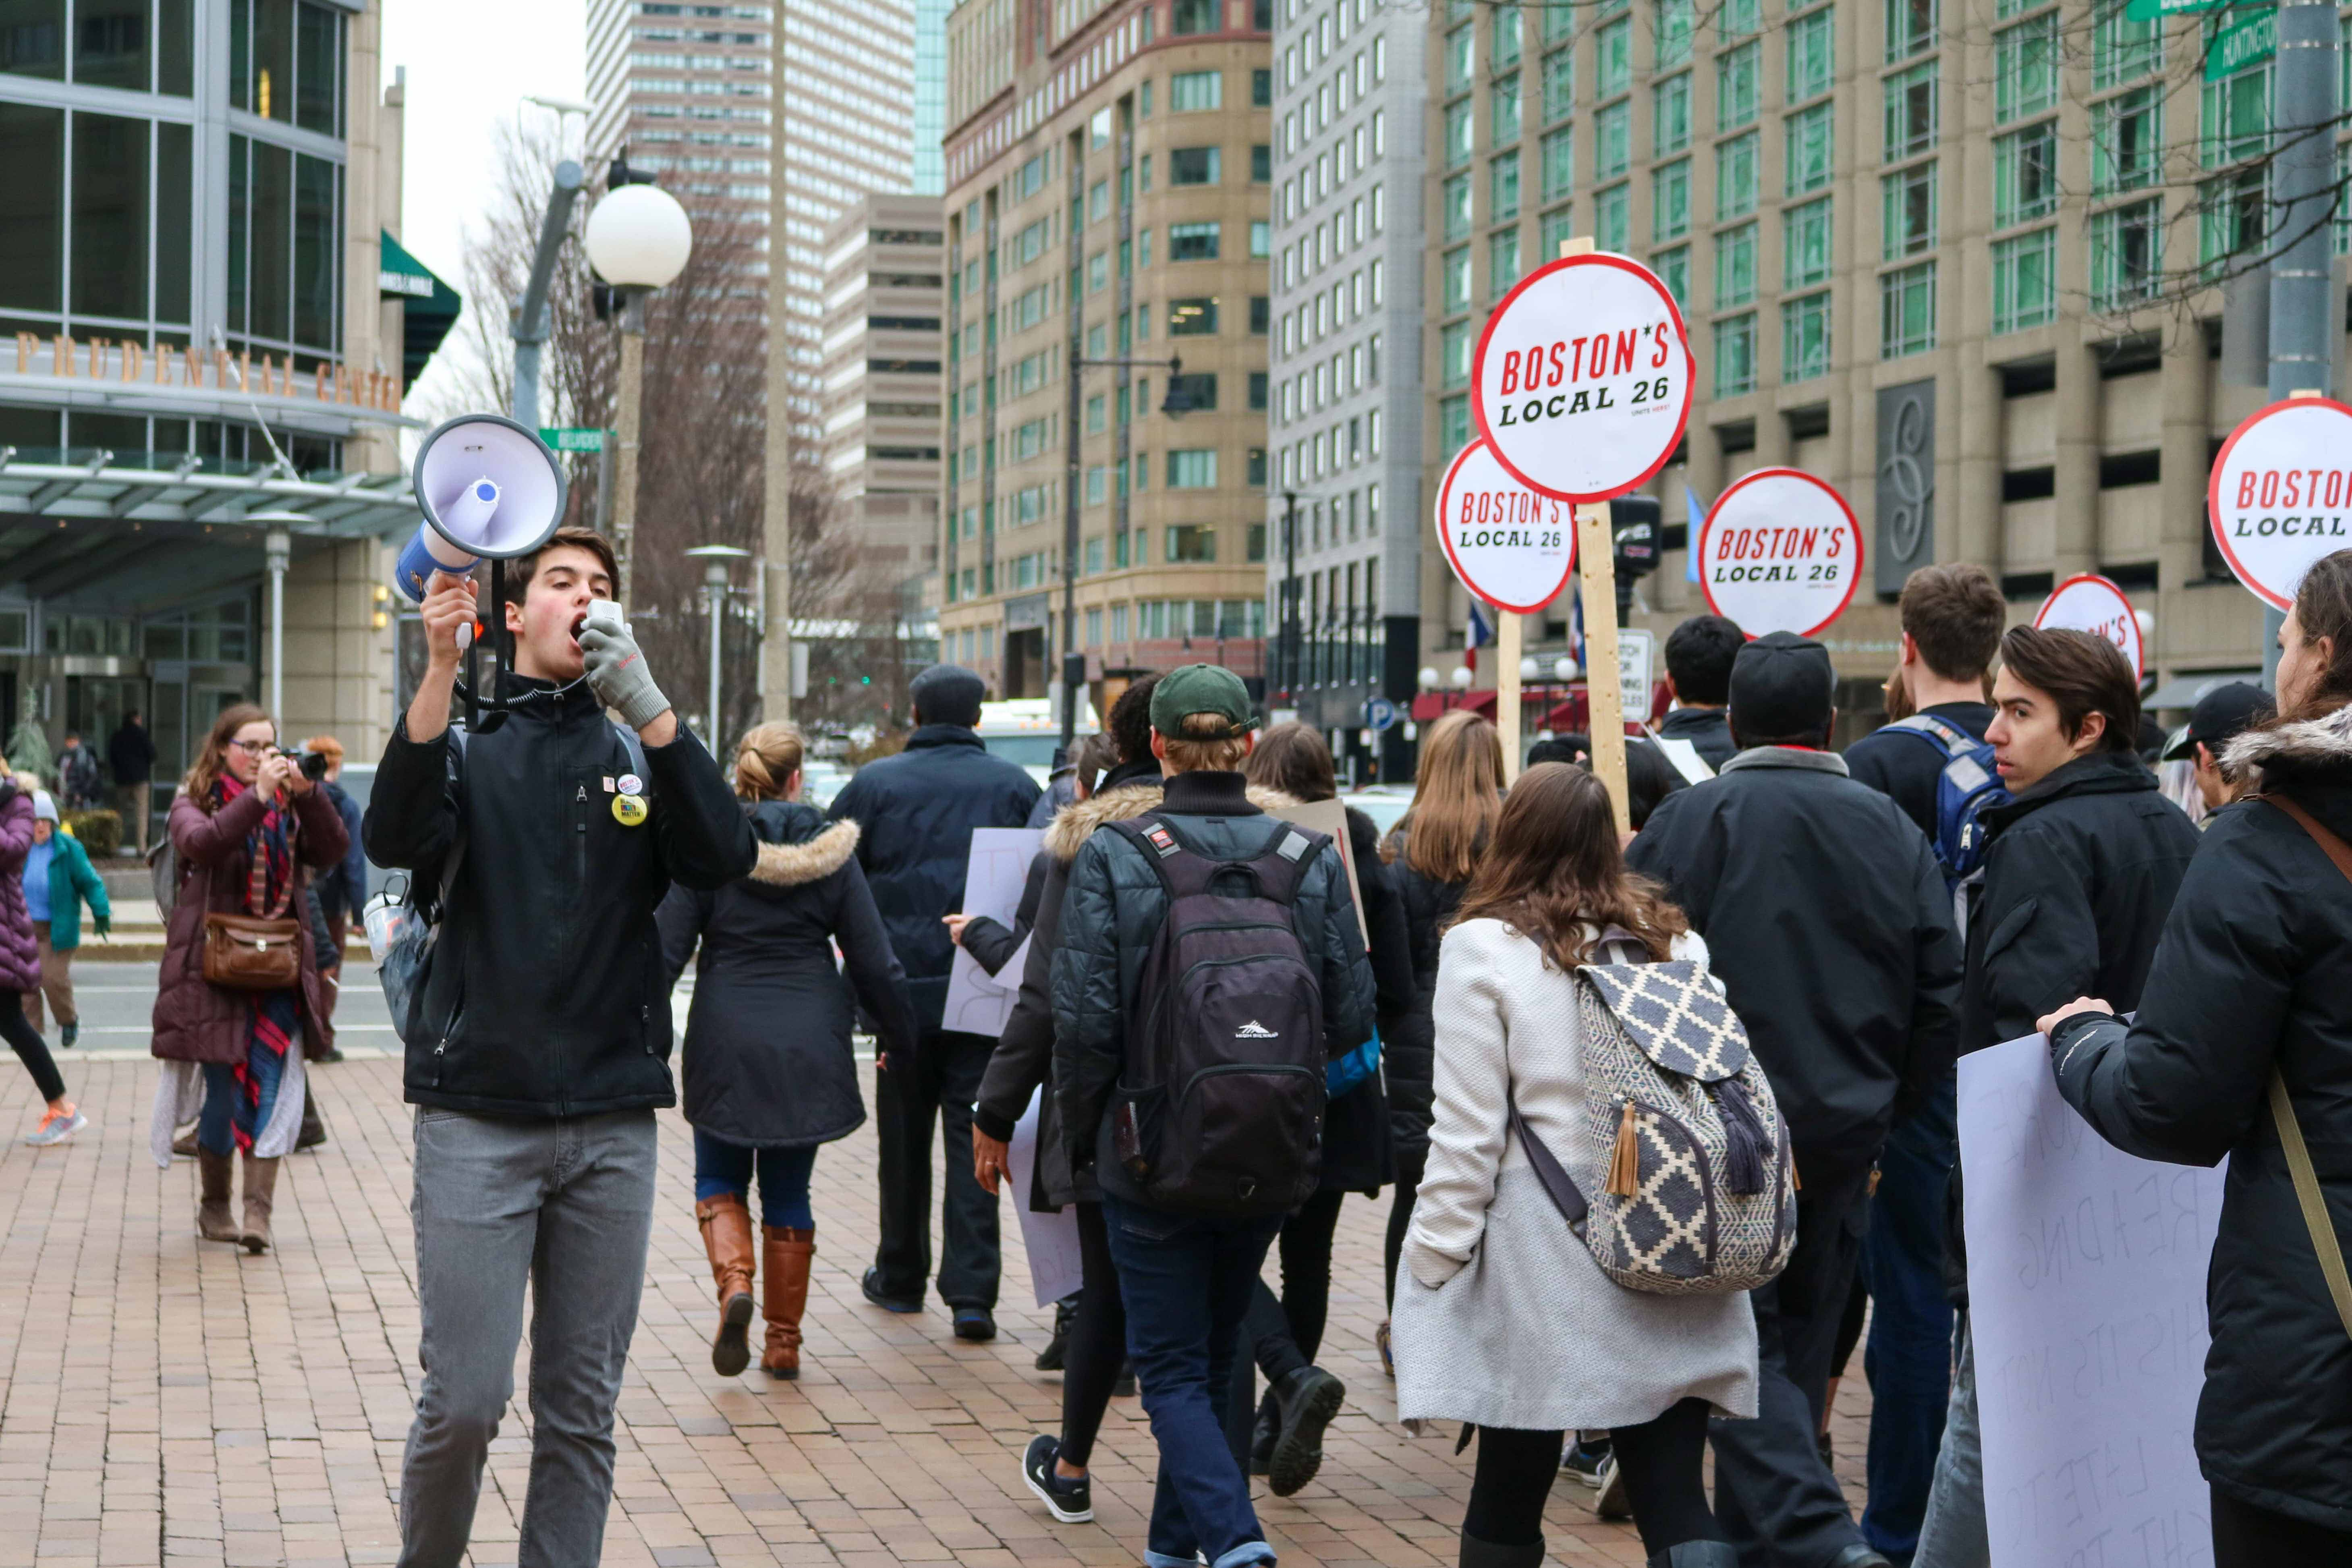 HOWL+joins+to+march+with+Boston%27s+Local+26+in+front+of+the+Prudential+Center+on+Huntington+Avenue.